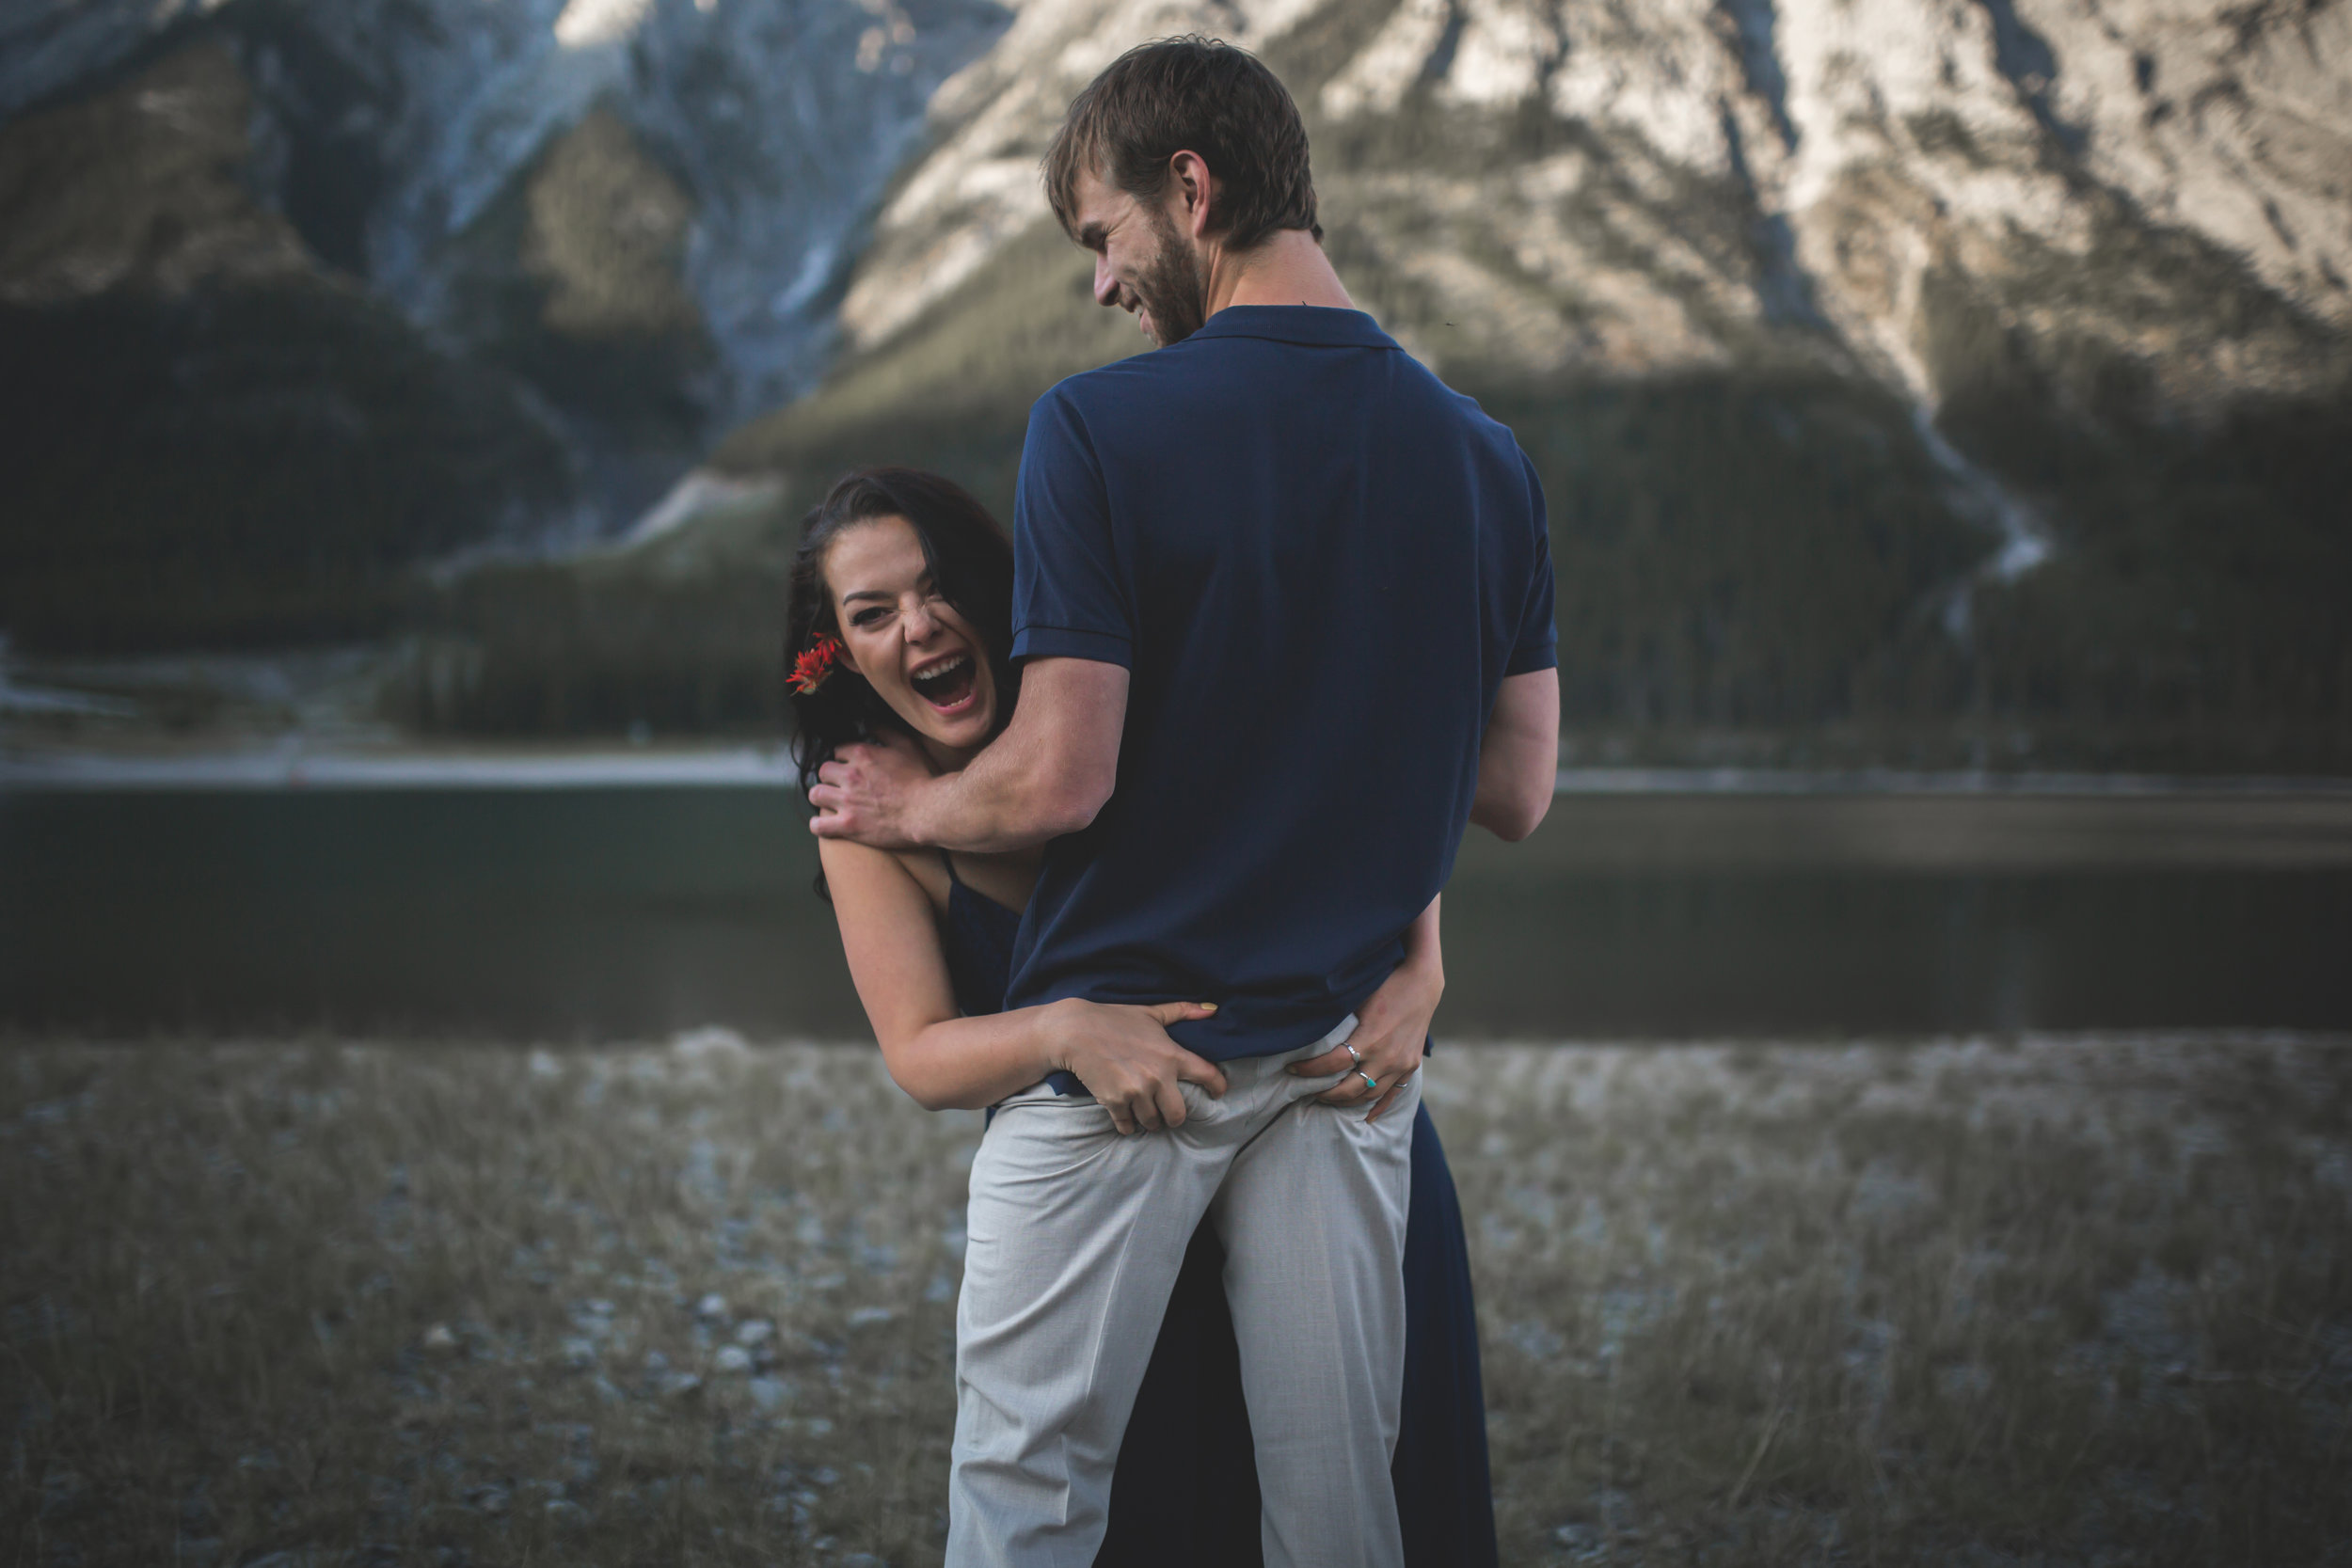 11-Adam-Ziorio-Photography-Hang-Out-Session-Amanda&Eric-Canmore-Alberta.jpg